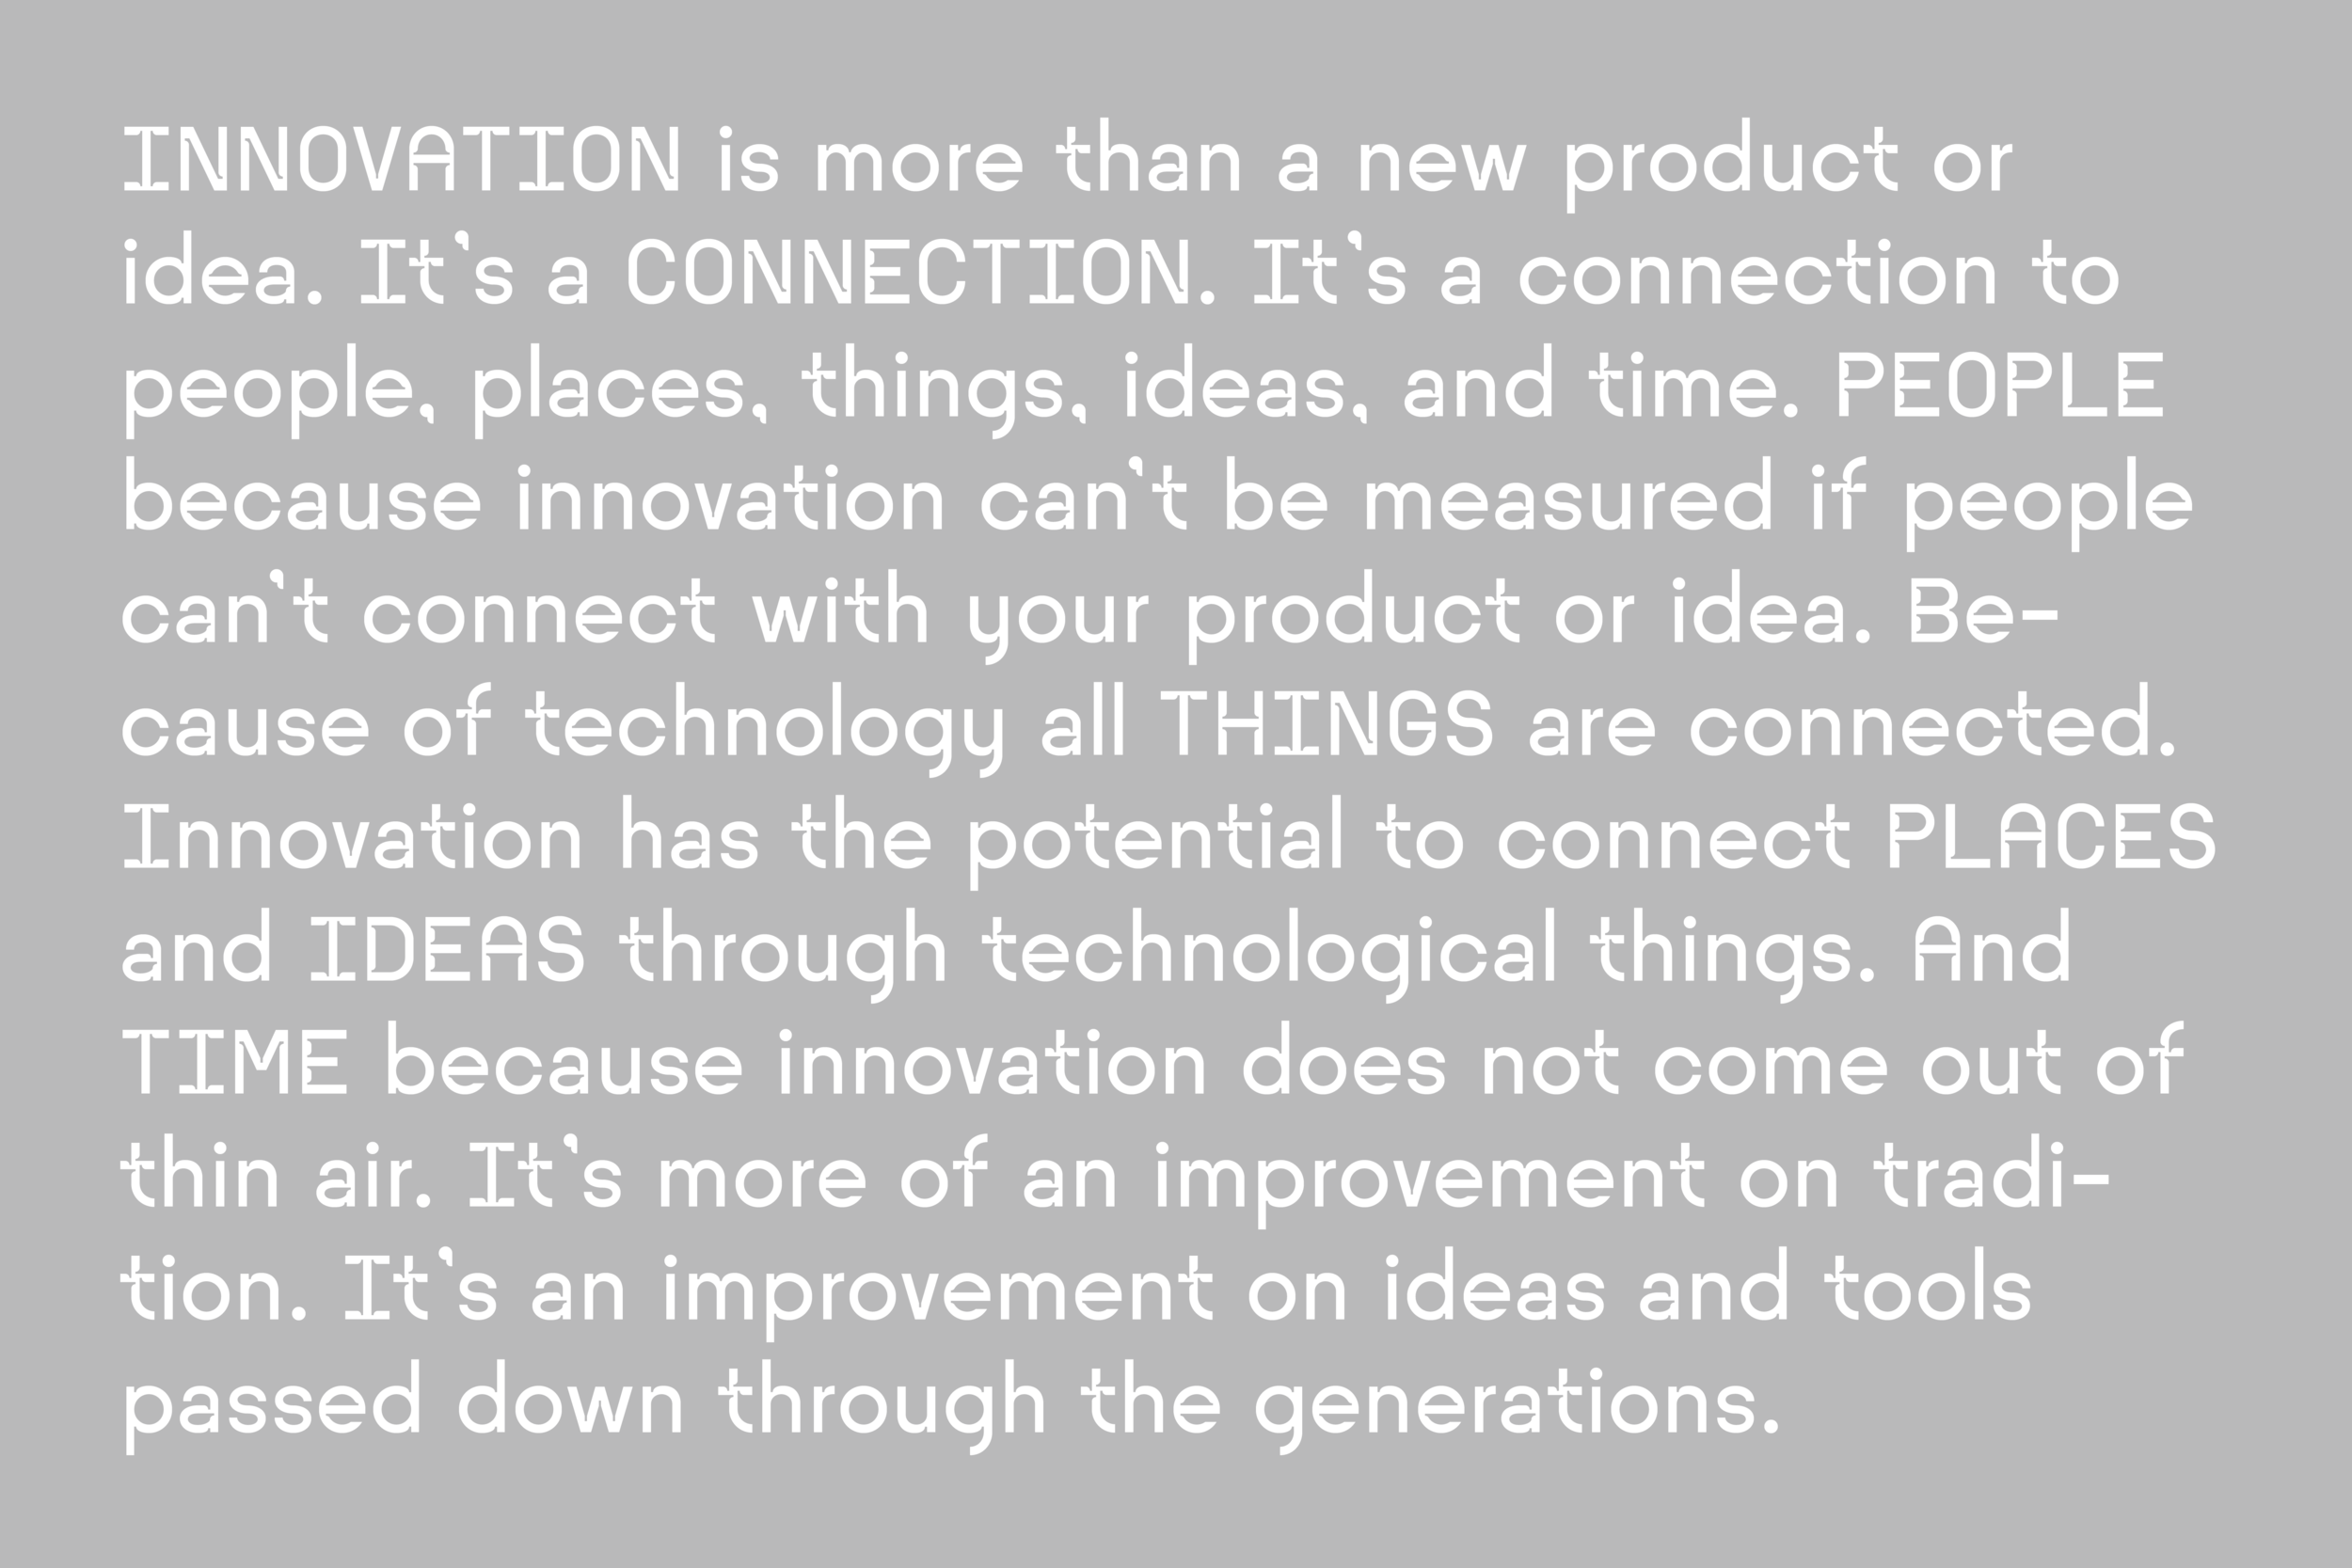 INNOVATION is more than a new product or idea. It's a CONNECTION. It's a connection to people, places, things, ideas, and time. PEOPLE because innovation can't be measured if people can't connect with your product or idea. Because of technology, all THINGS are connected. Innovation has the potential to connect PLACES and IDEAS through technological things. And TIME because innovation does not come out of thin air. It's more of an improvement on tradition. It's an improvement on ideas and tools passed down through the generations.